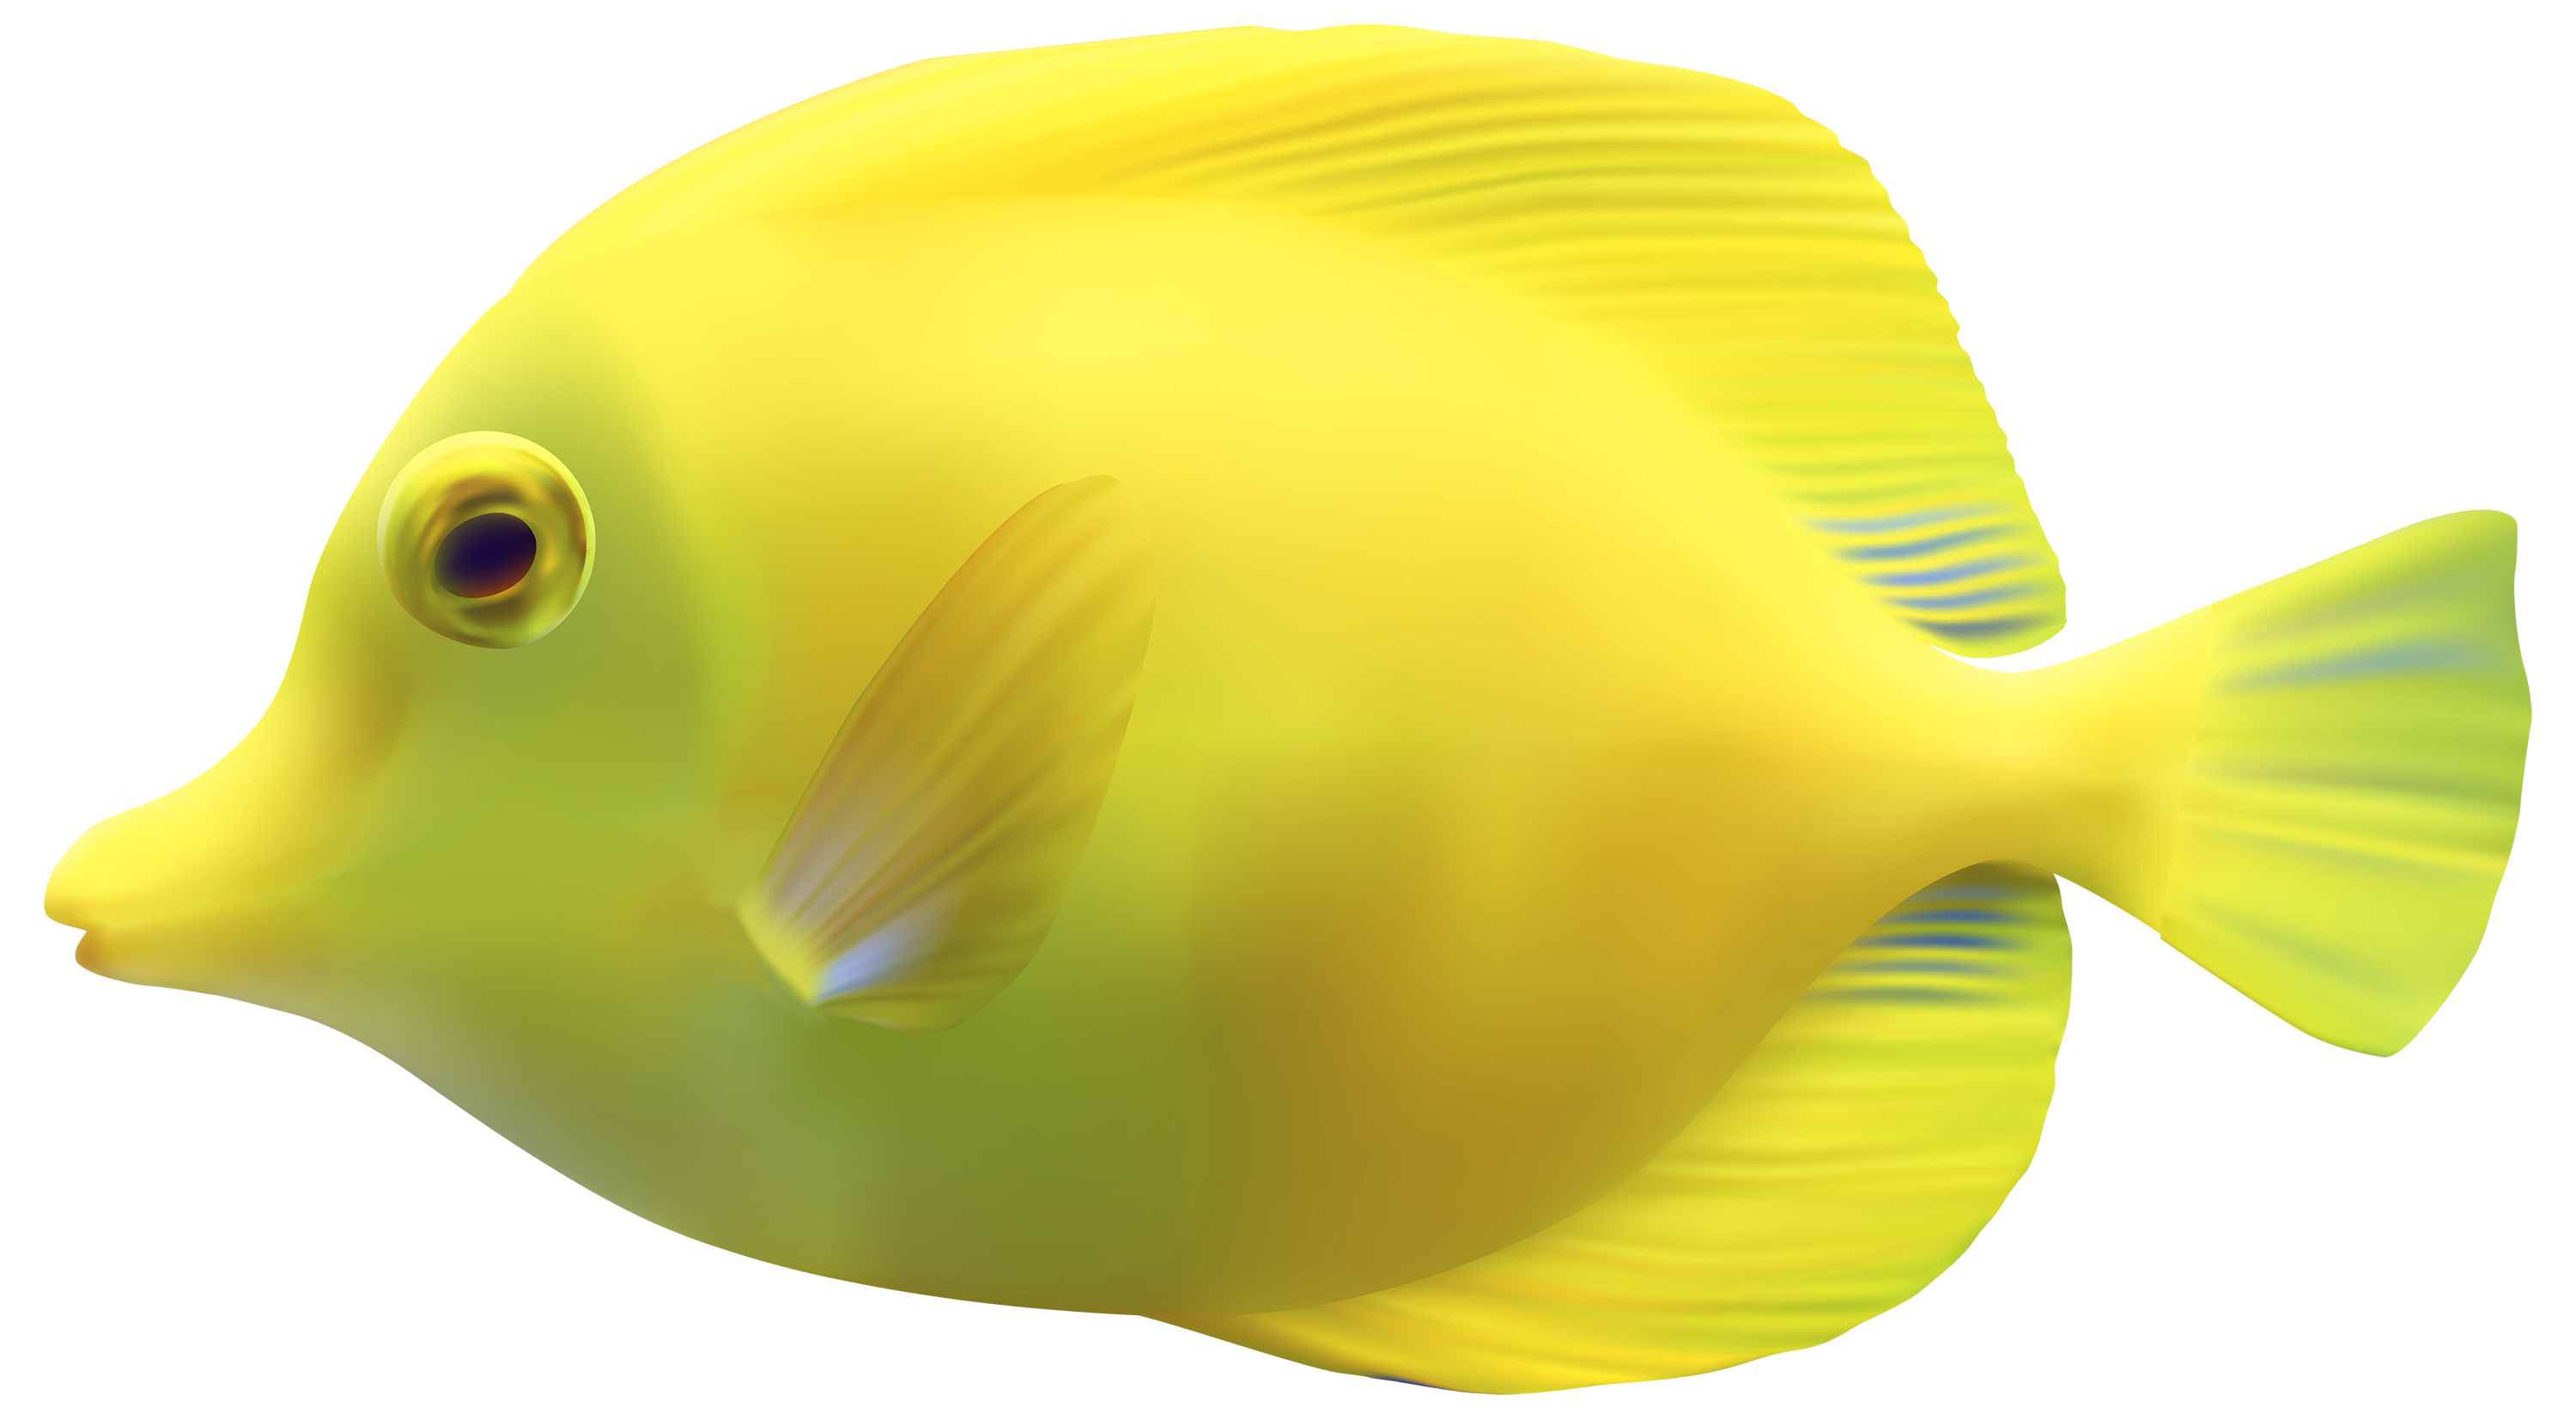 fish png transparent fish png images pluspng clip art goldfish in a bowl clip art goldfish crackers in a bag